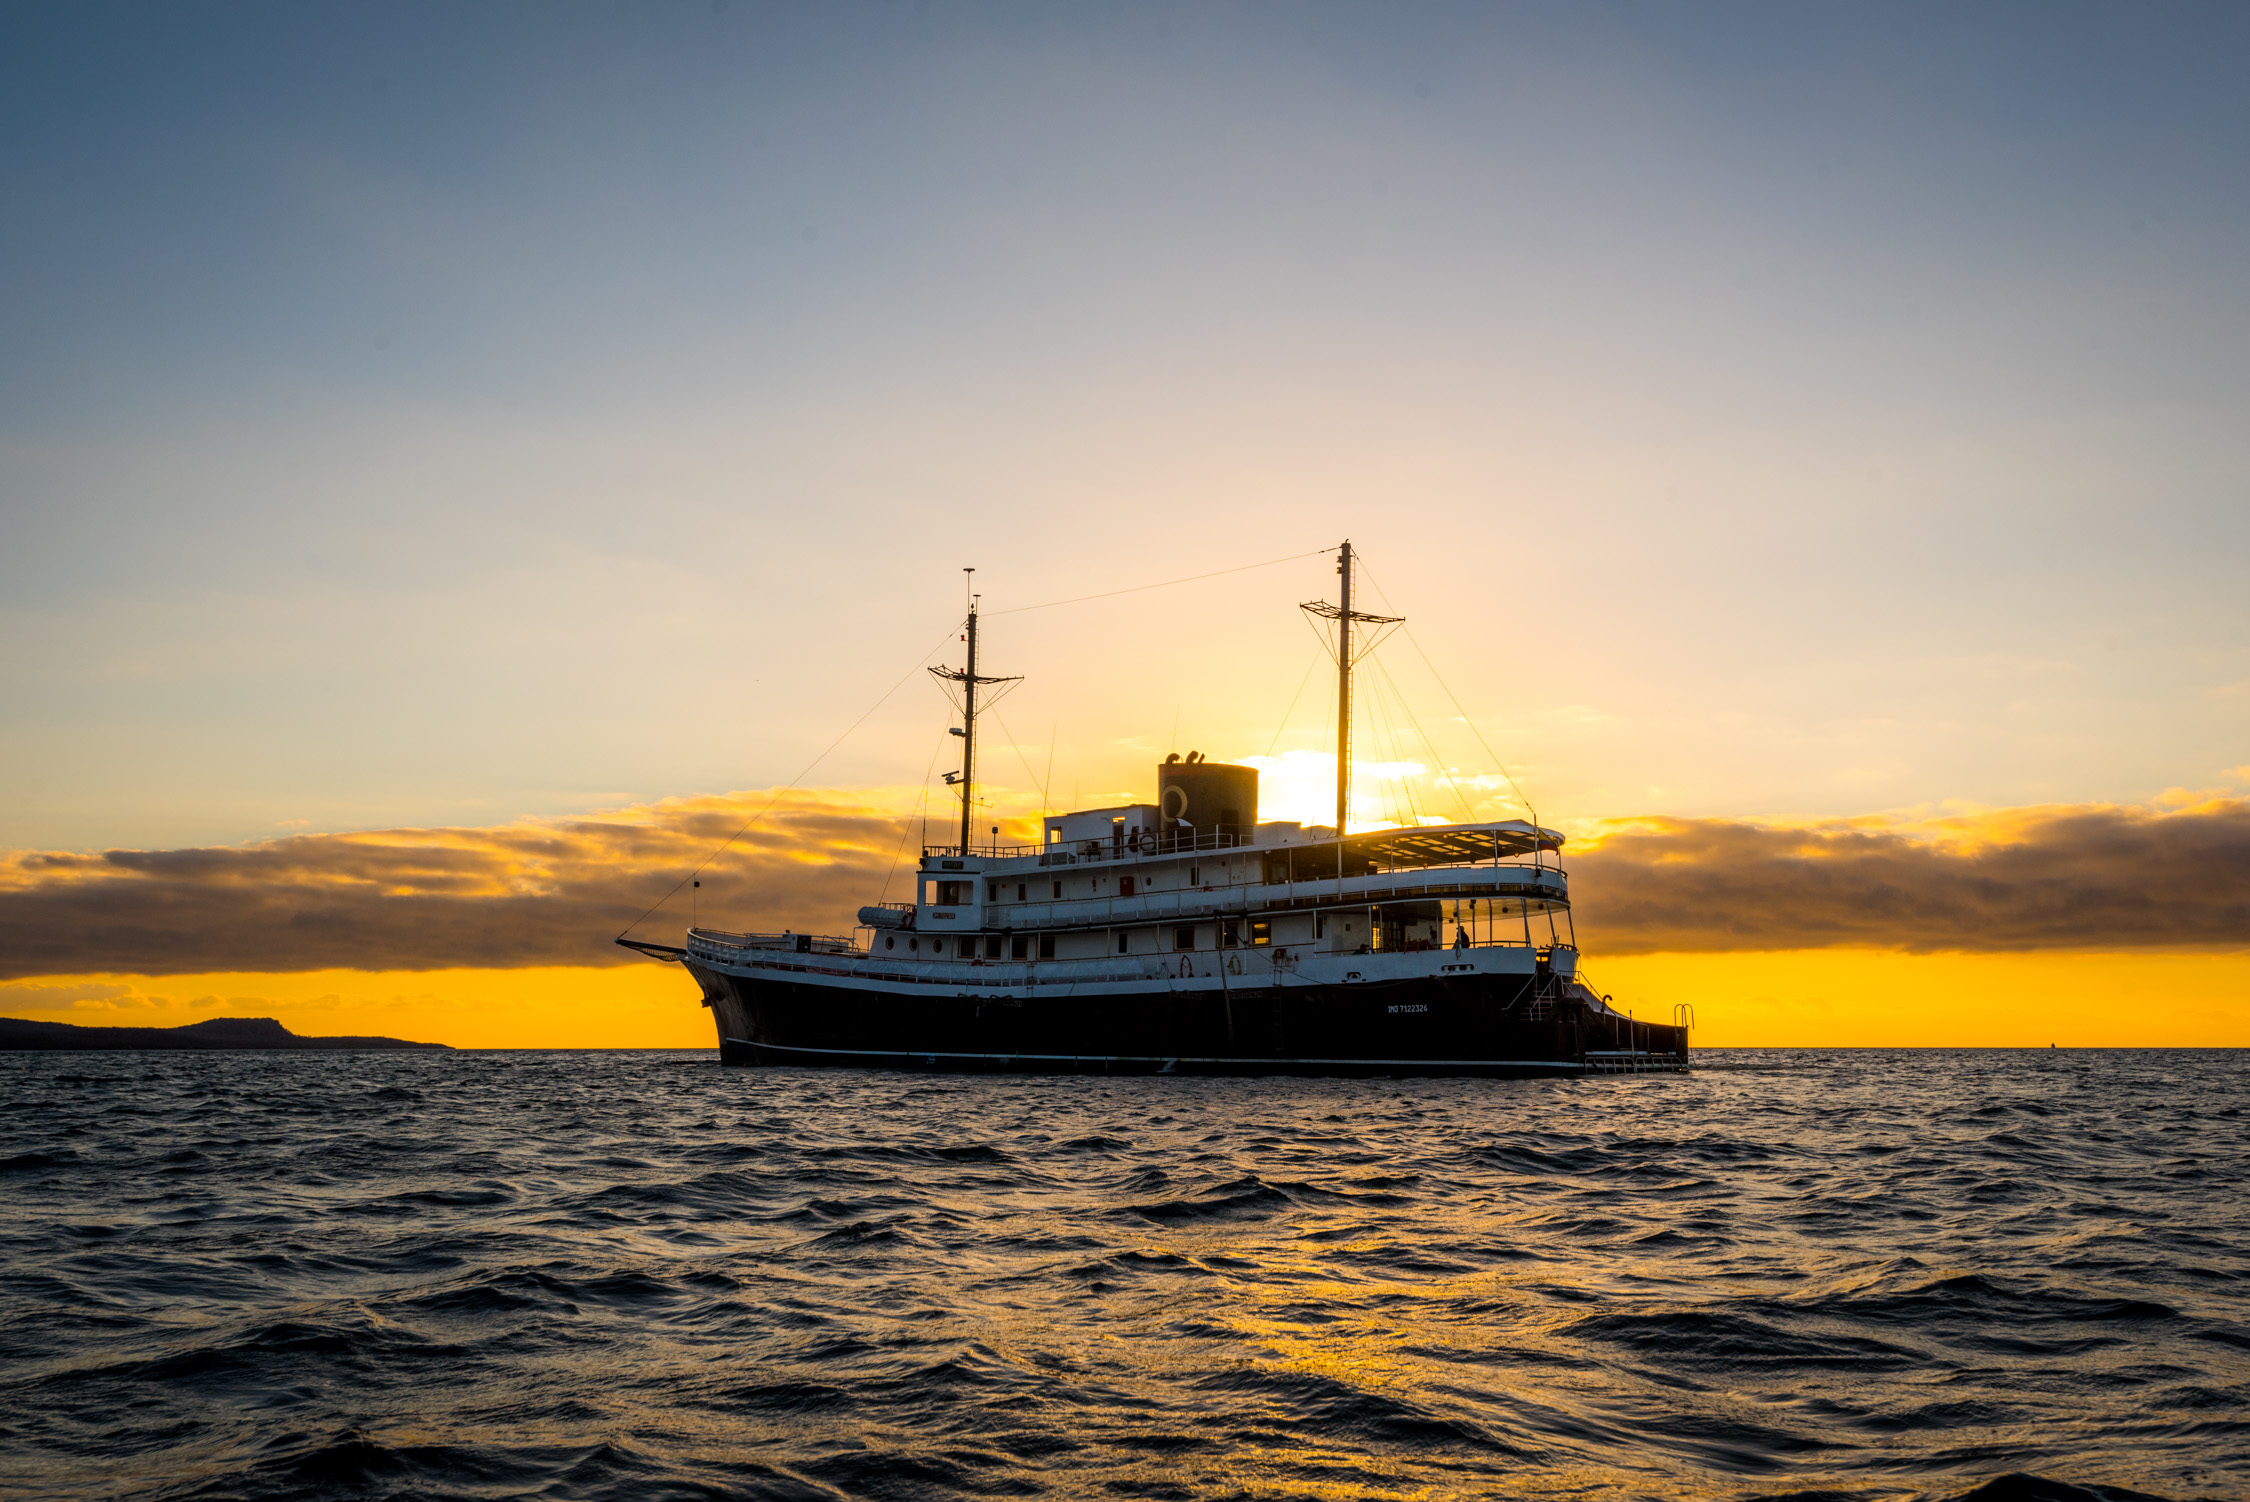 The Evolution (part of Quasar Expeditions) anchored for the night